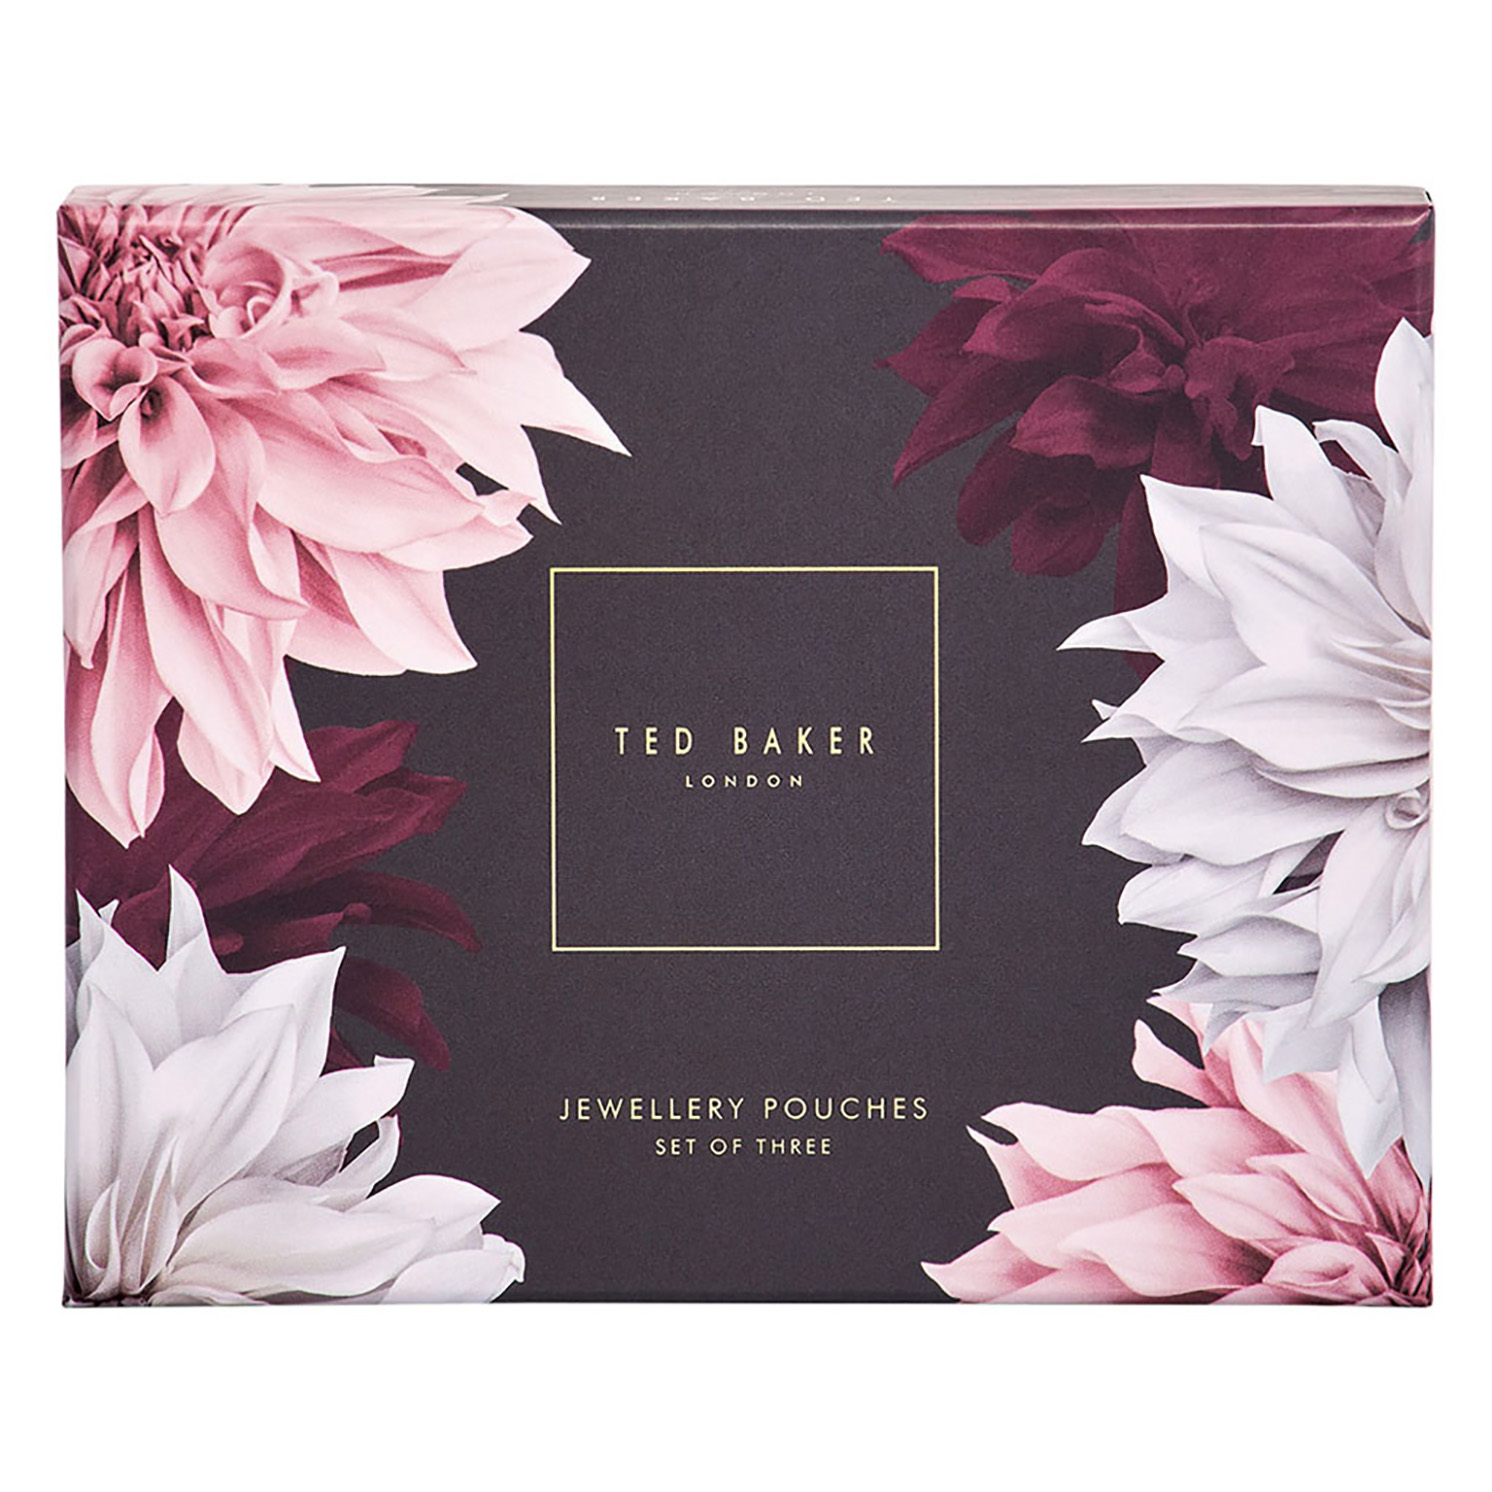 Ted Baker – Trio of Clove Jewellery Travel Pouches in Presentation Box